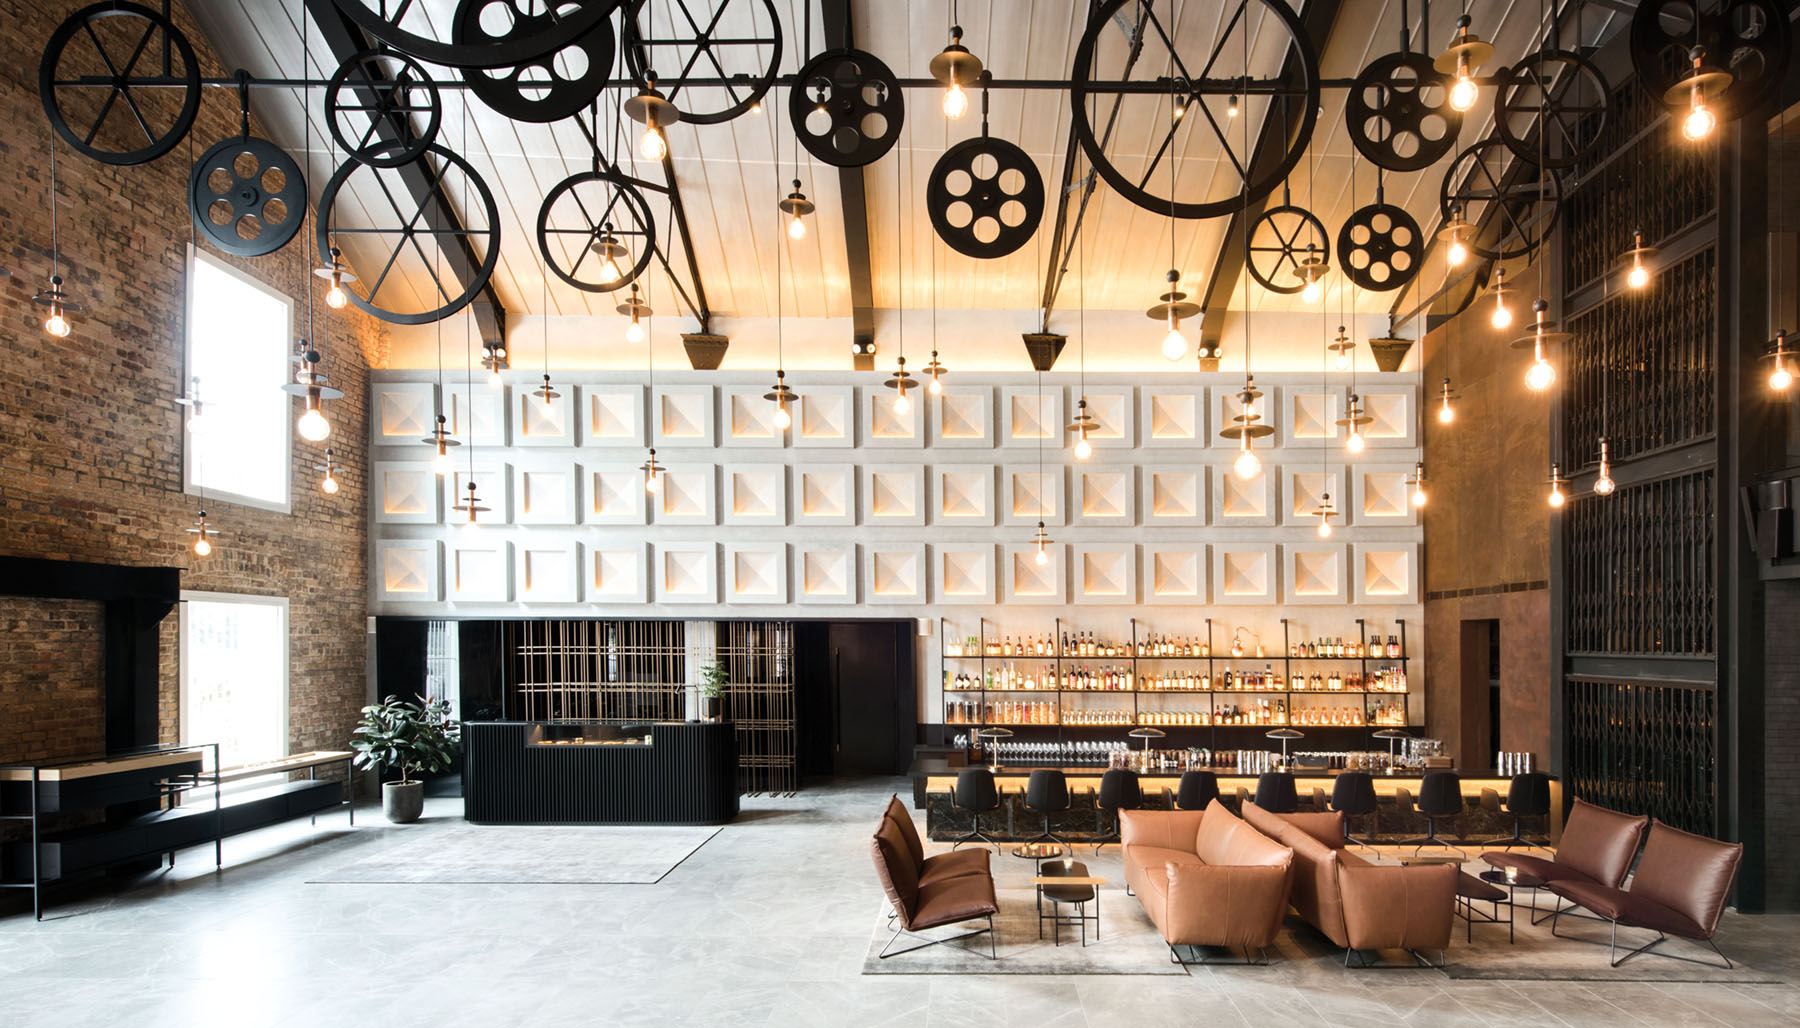 The Warehouse Hotel's lobby pays tribute to its spice-warehouse origins with pulleys artfully hung from the ceiling